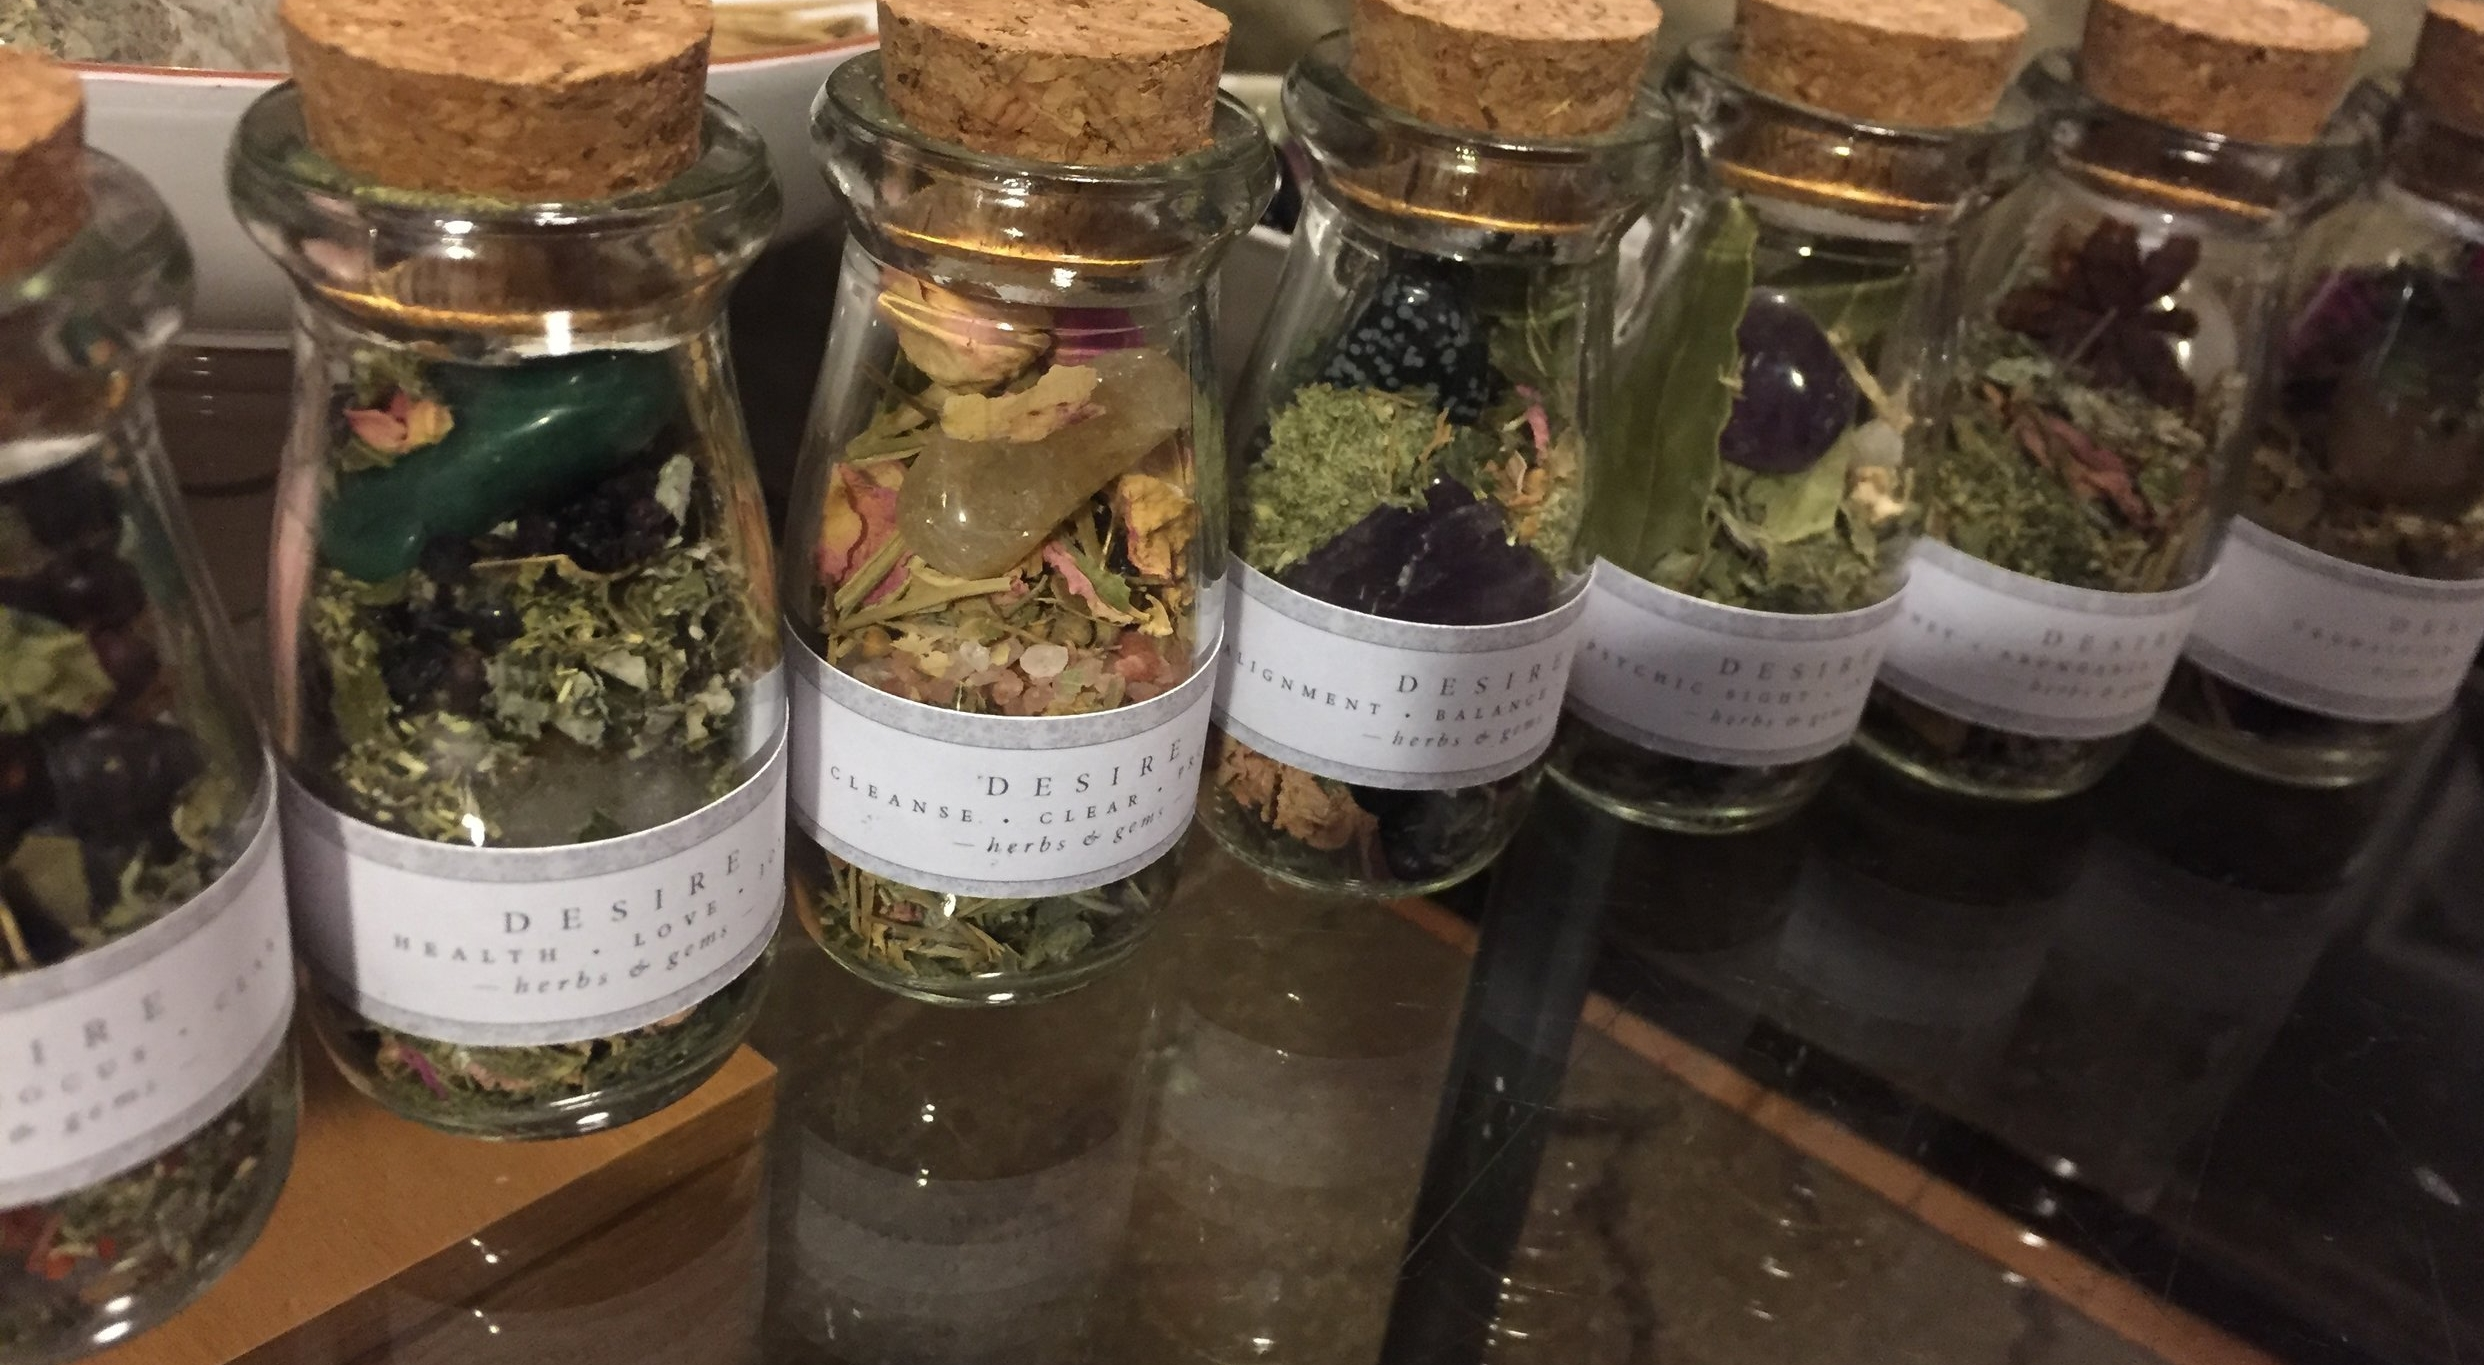 Seven Magical blends crafted with intention, love and permission by Bean of the Fields